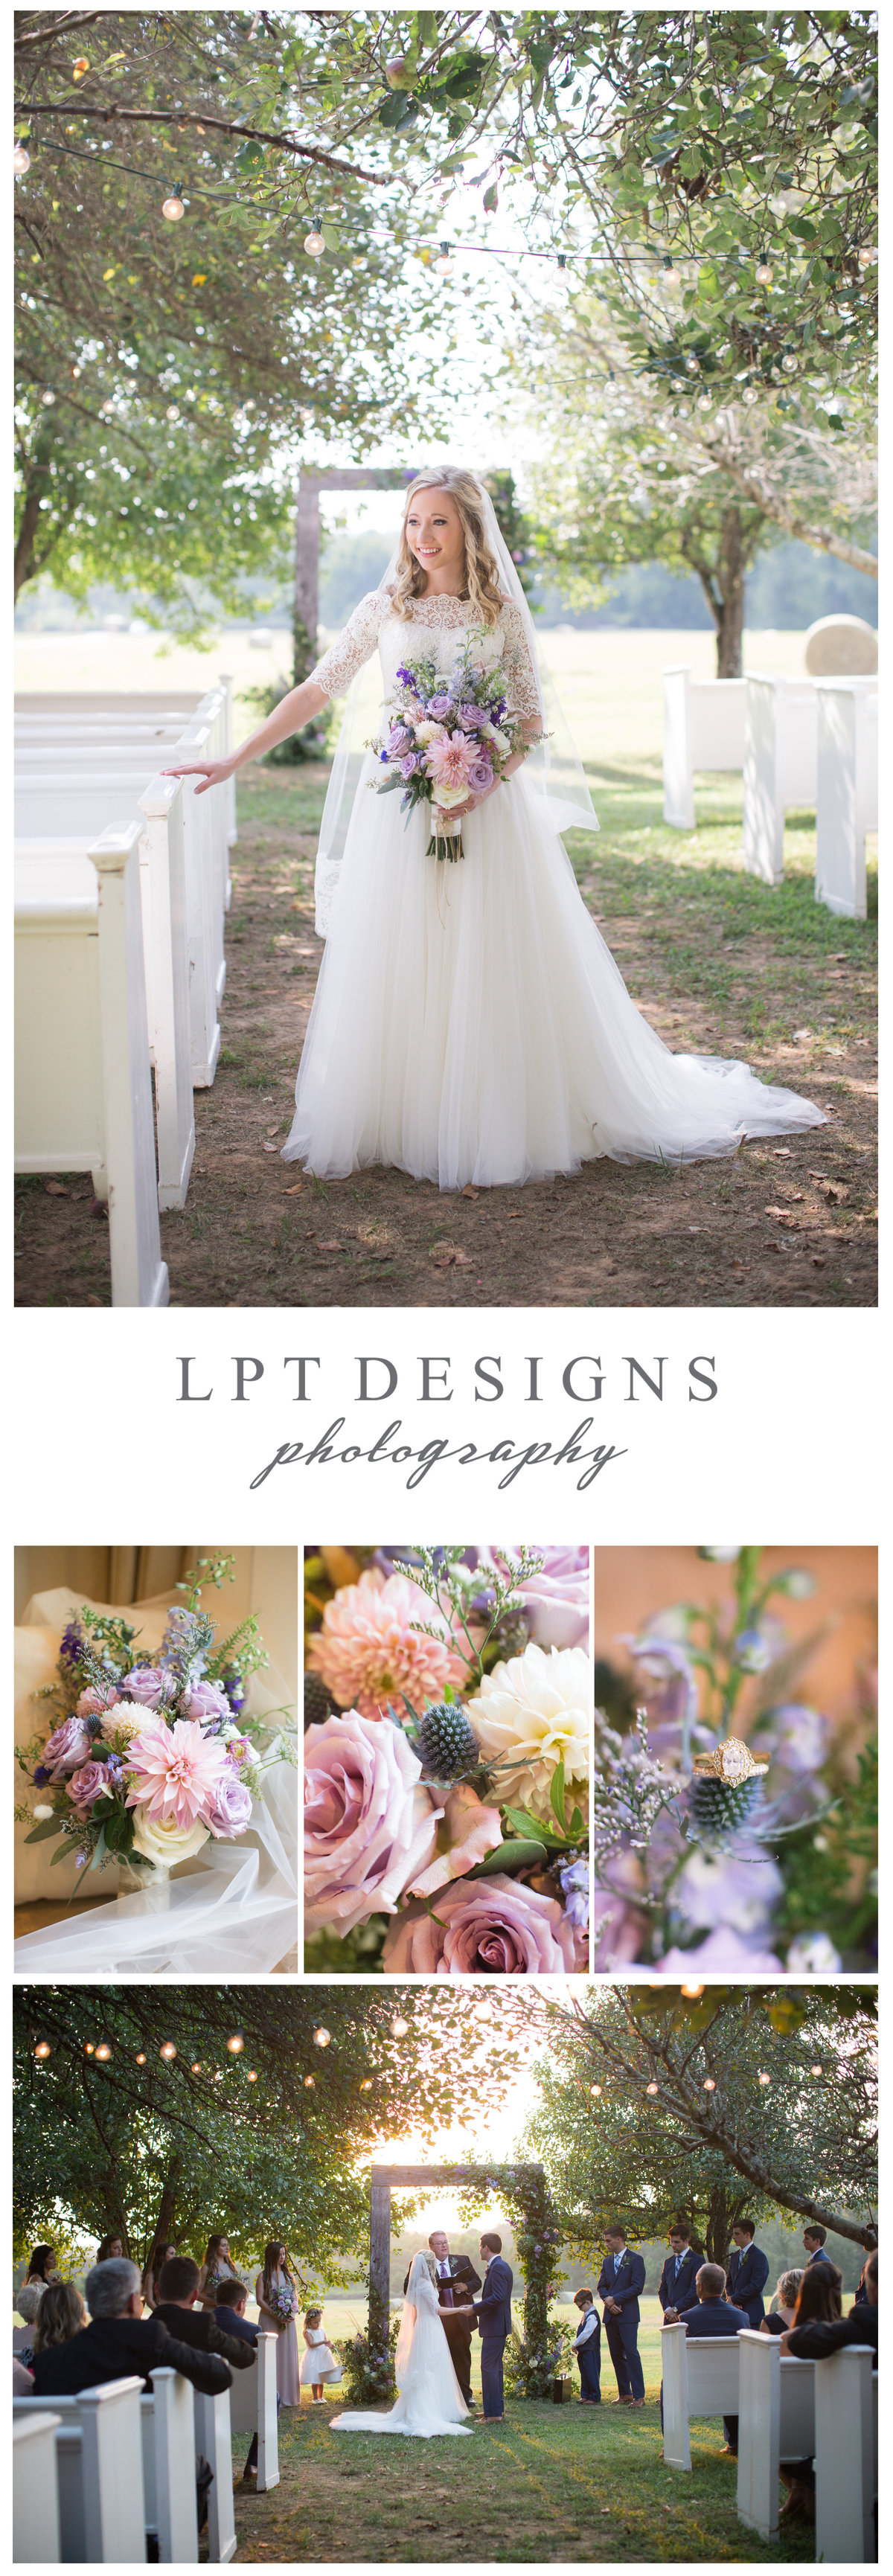 LPT Designs Photography Lydia Thrift Gadsden Alabama Fine Art Wedding Photographer KA 1